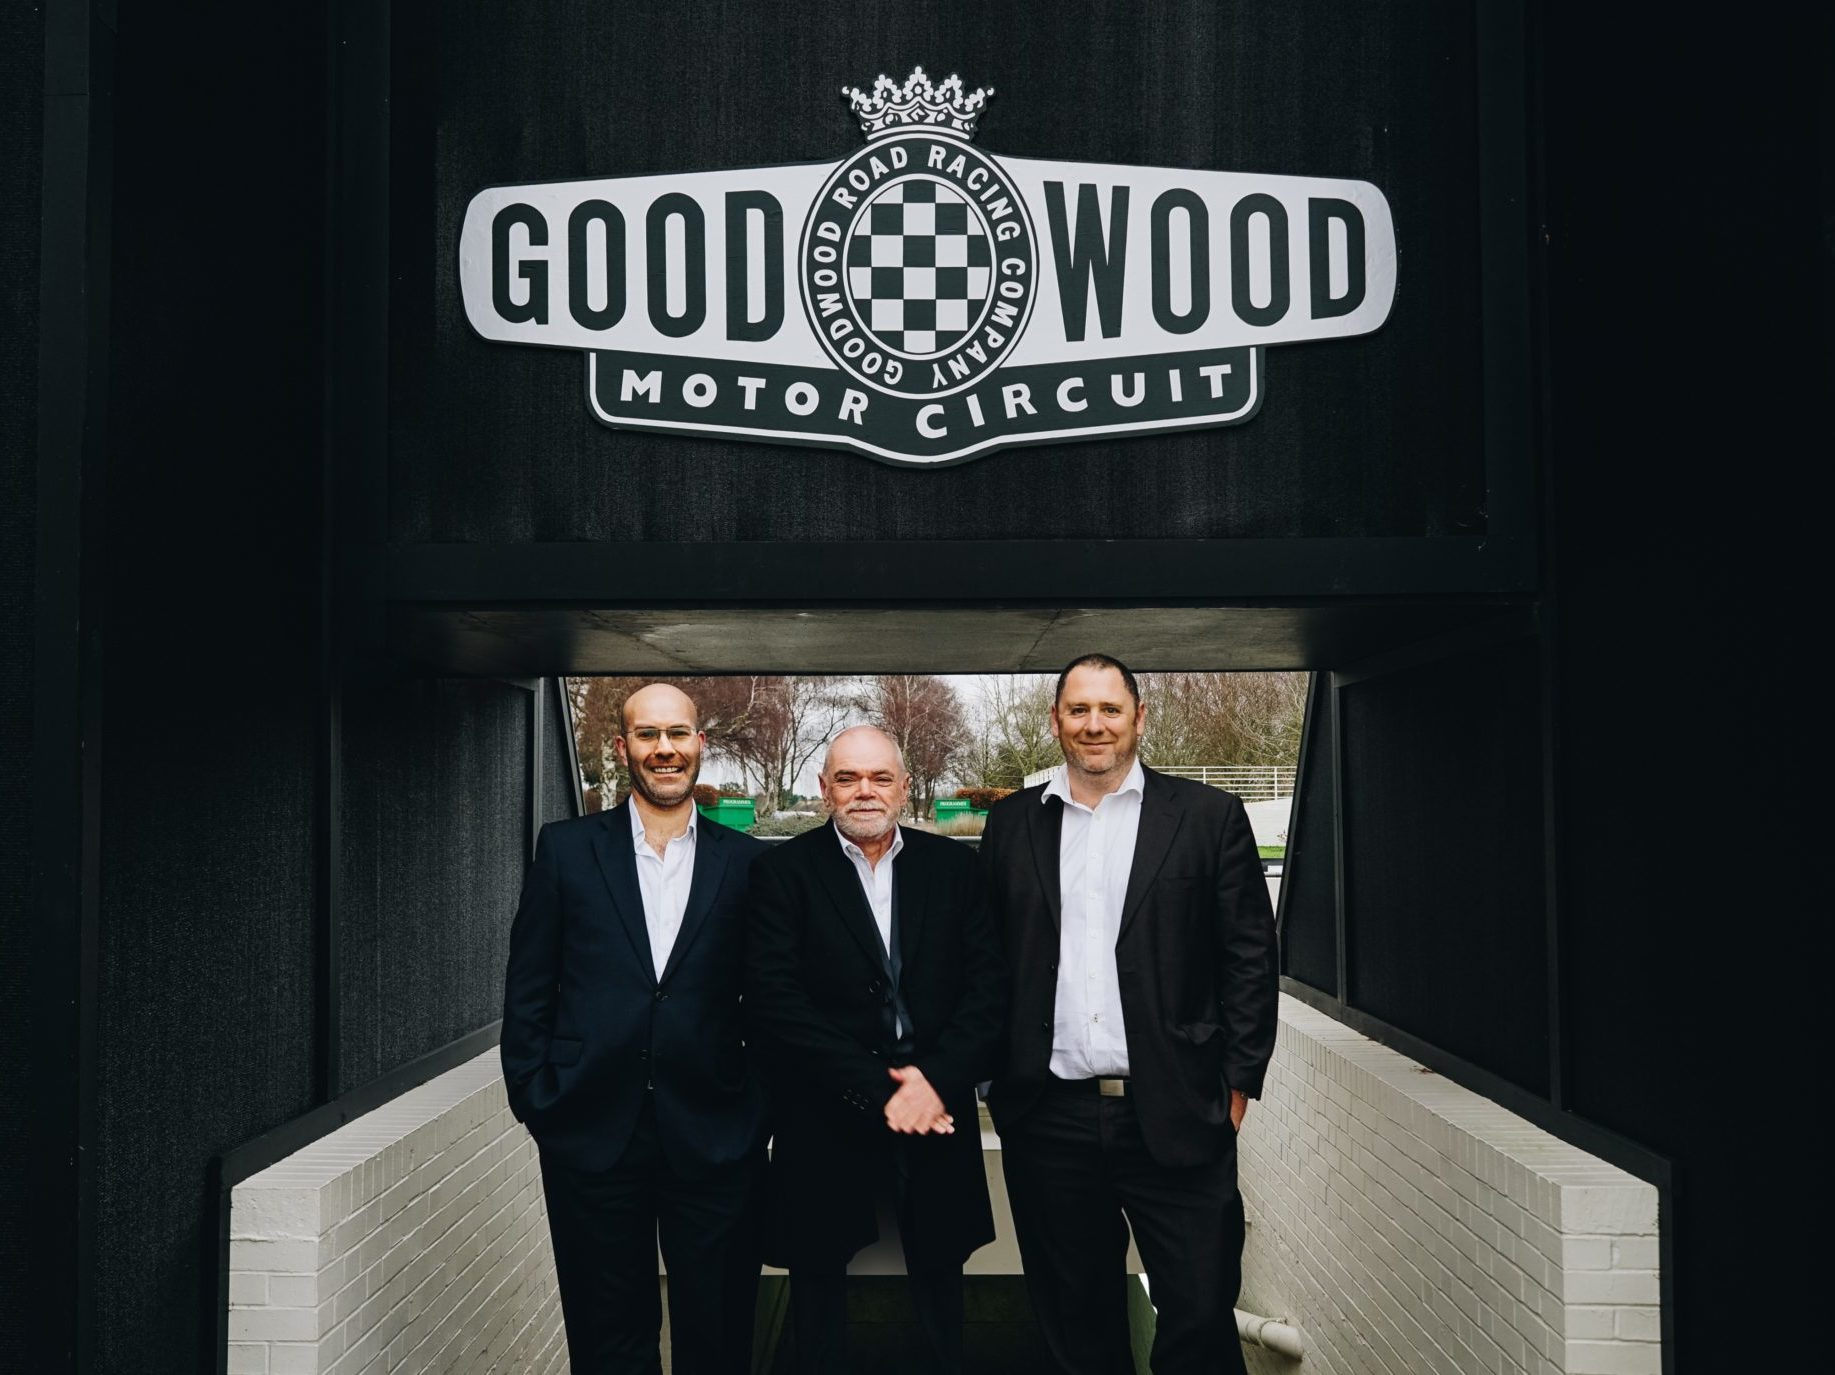 Blanco Digital Launches New Office Within Grounds of Iconic Goodwood Motor Circuit